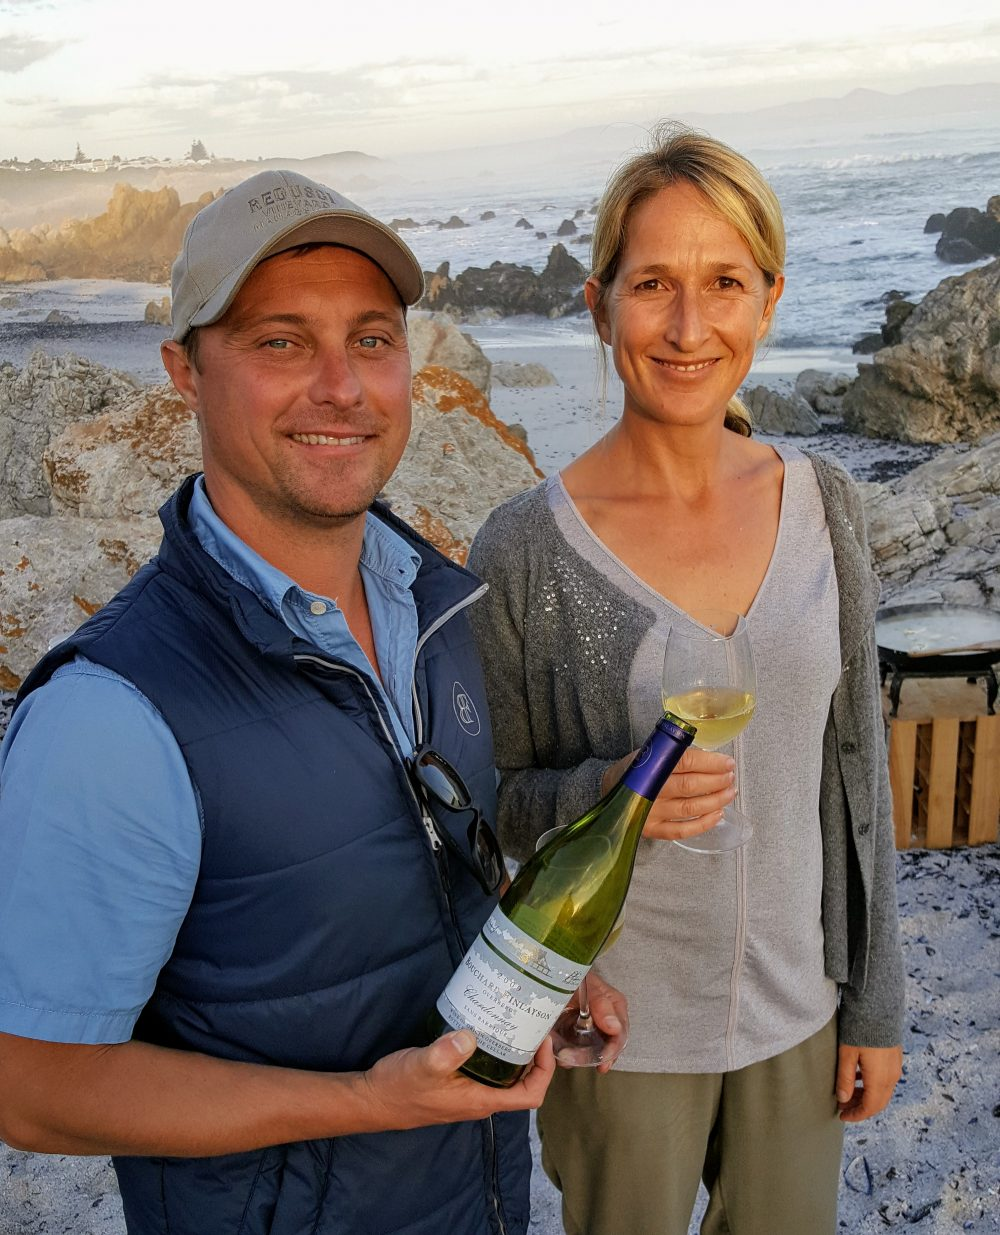 bouchard team e1525269049208 Pairing Abalone With The Fine Wines Of Bouchard Finlayson